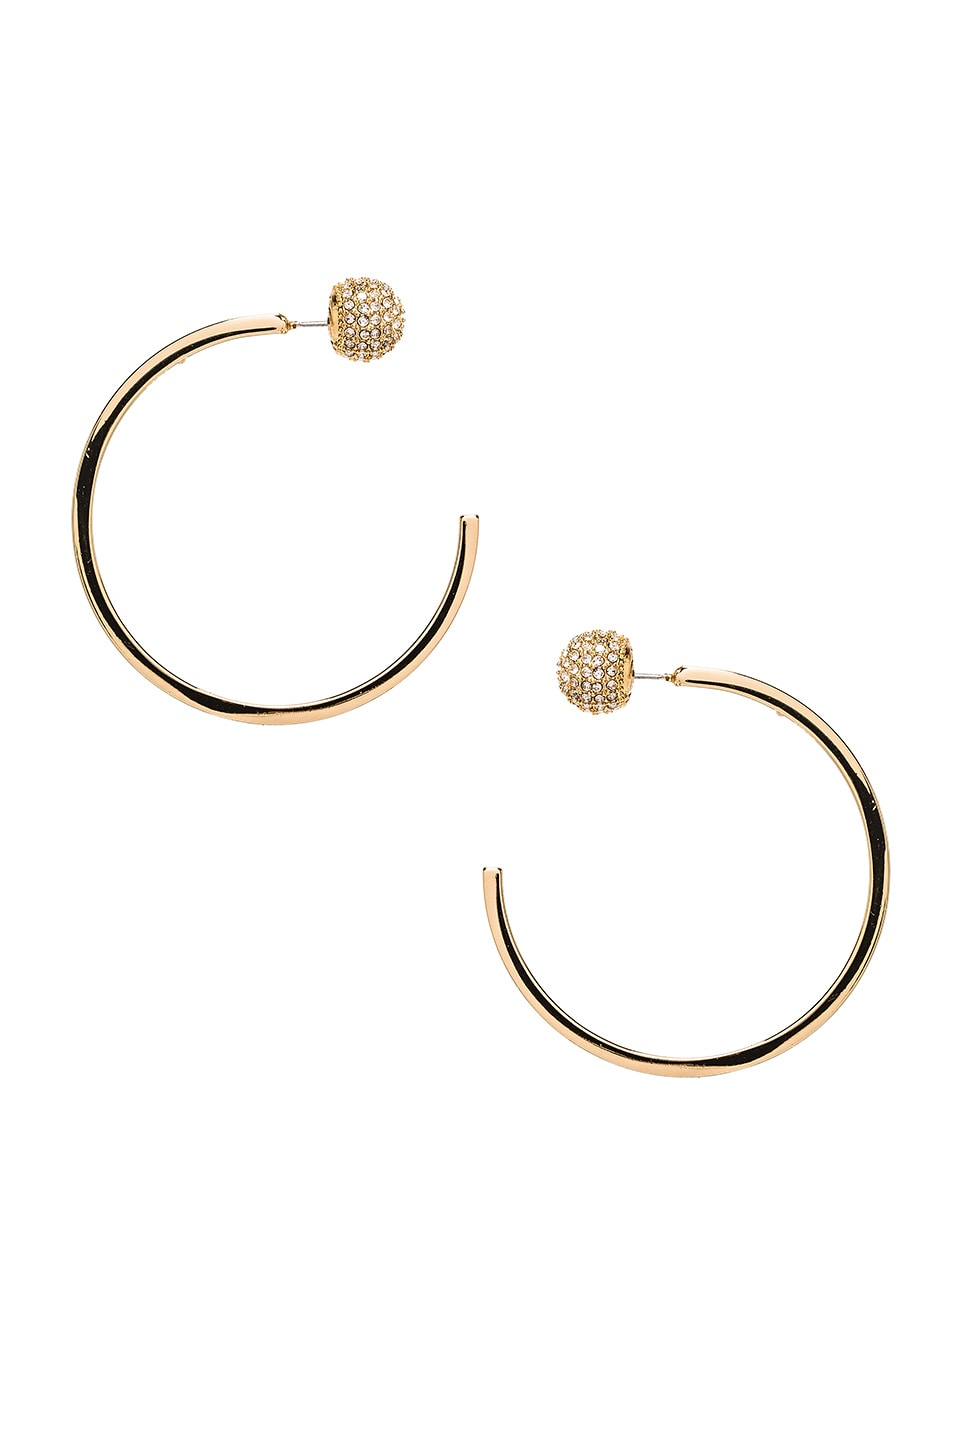 Rebecca Minkoff Pave Ball Topped C Hoops in Gold